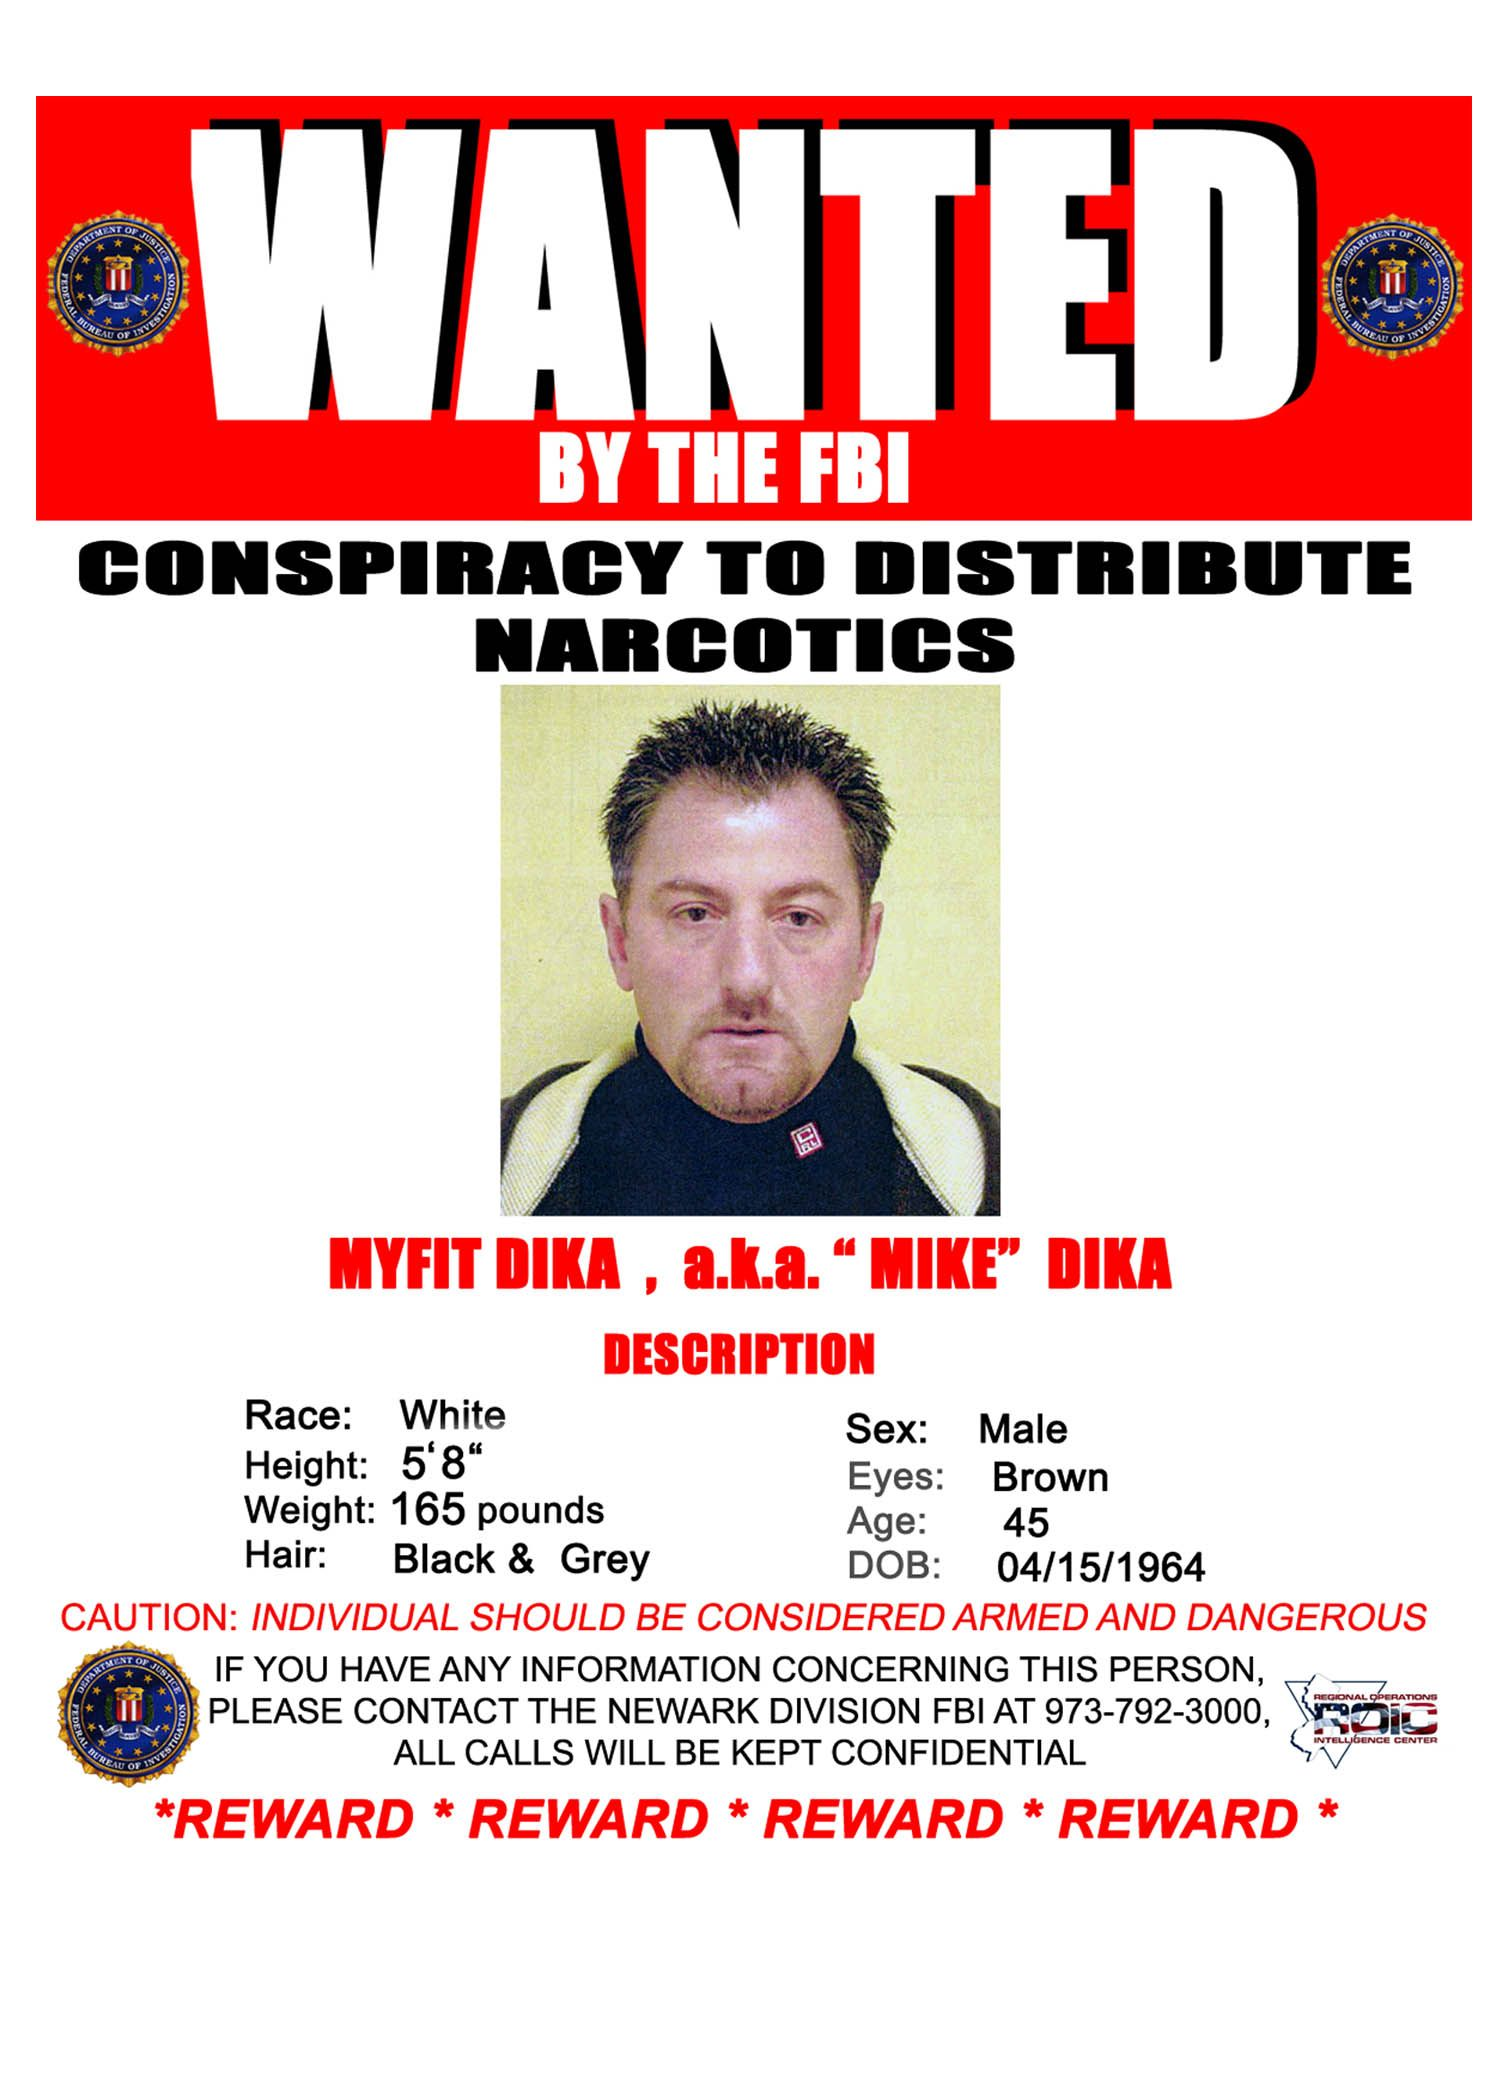 Fbi Wanted Poster Template Free Images Crazy Gallery cakepins.com ...